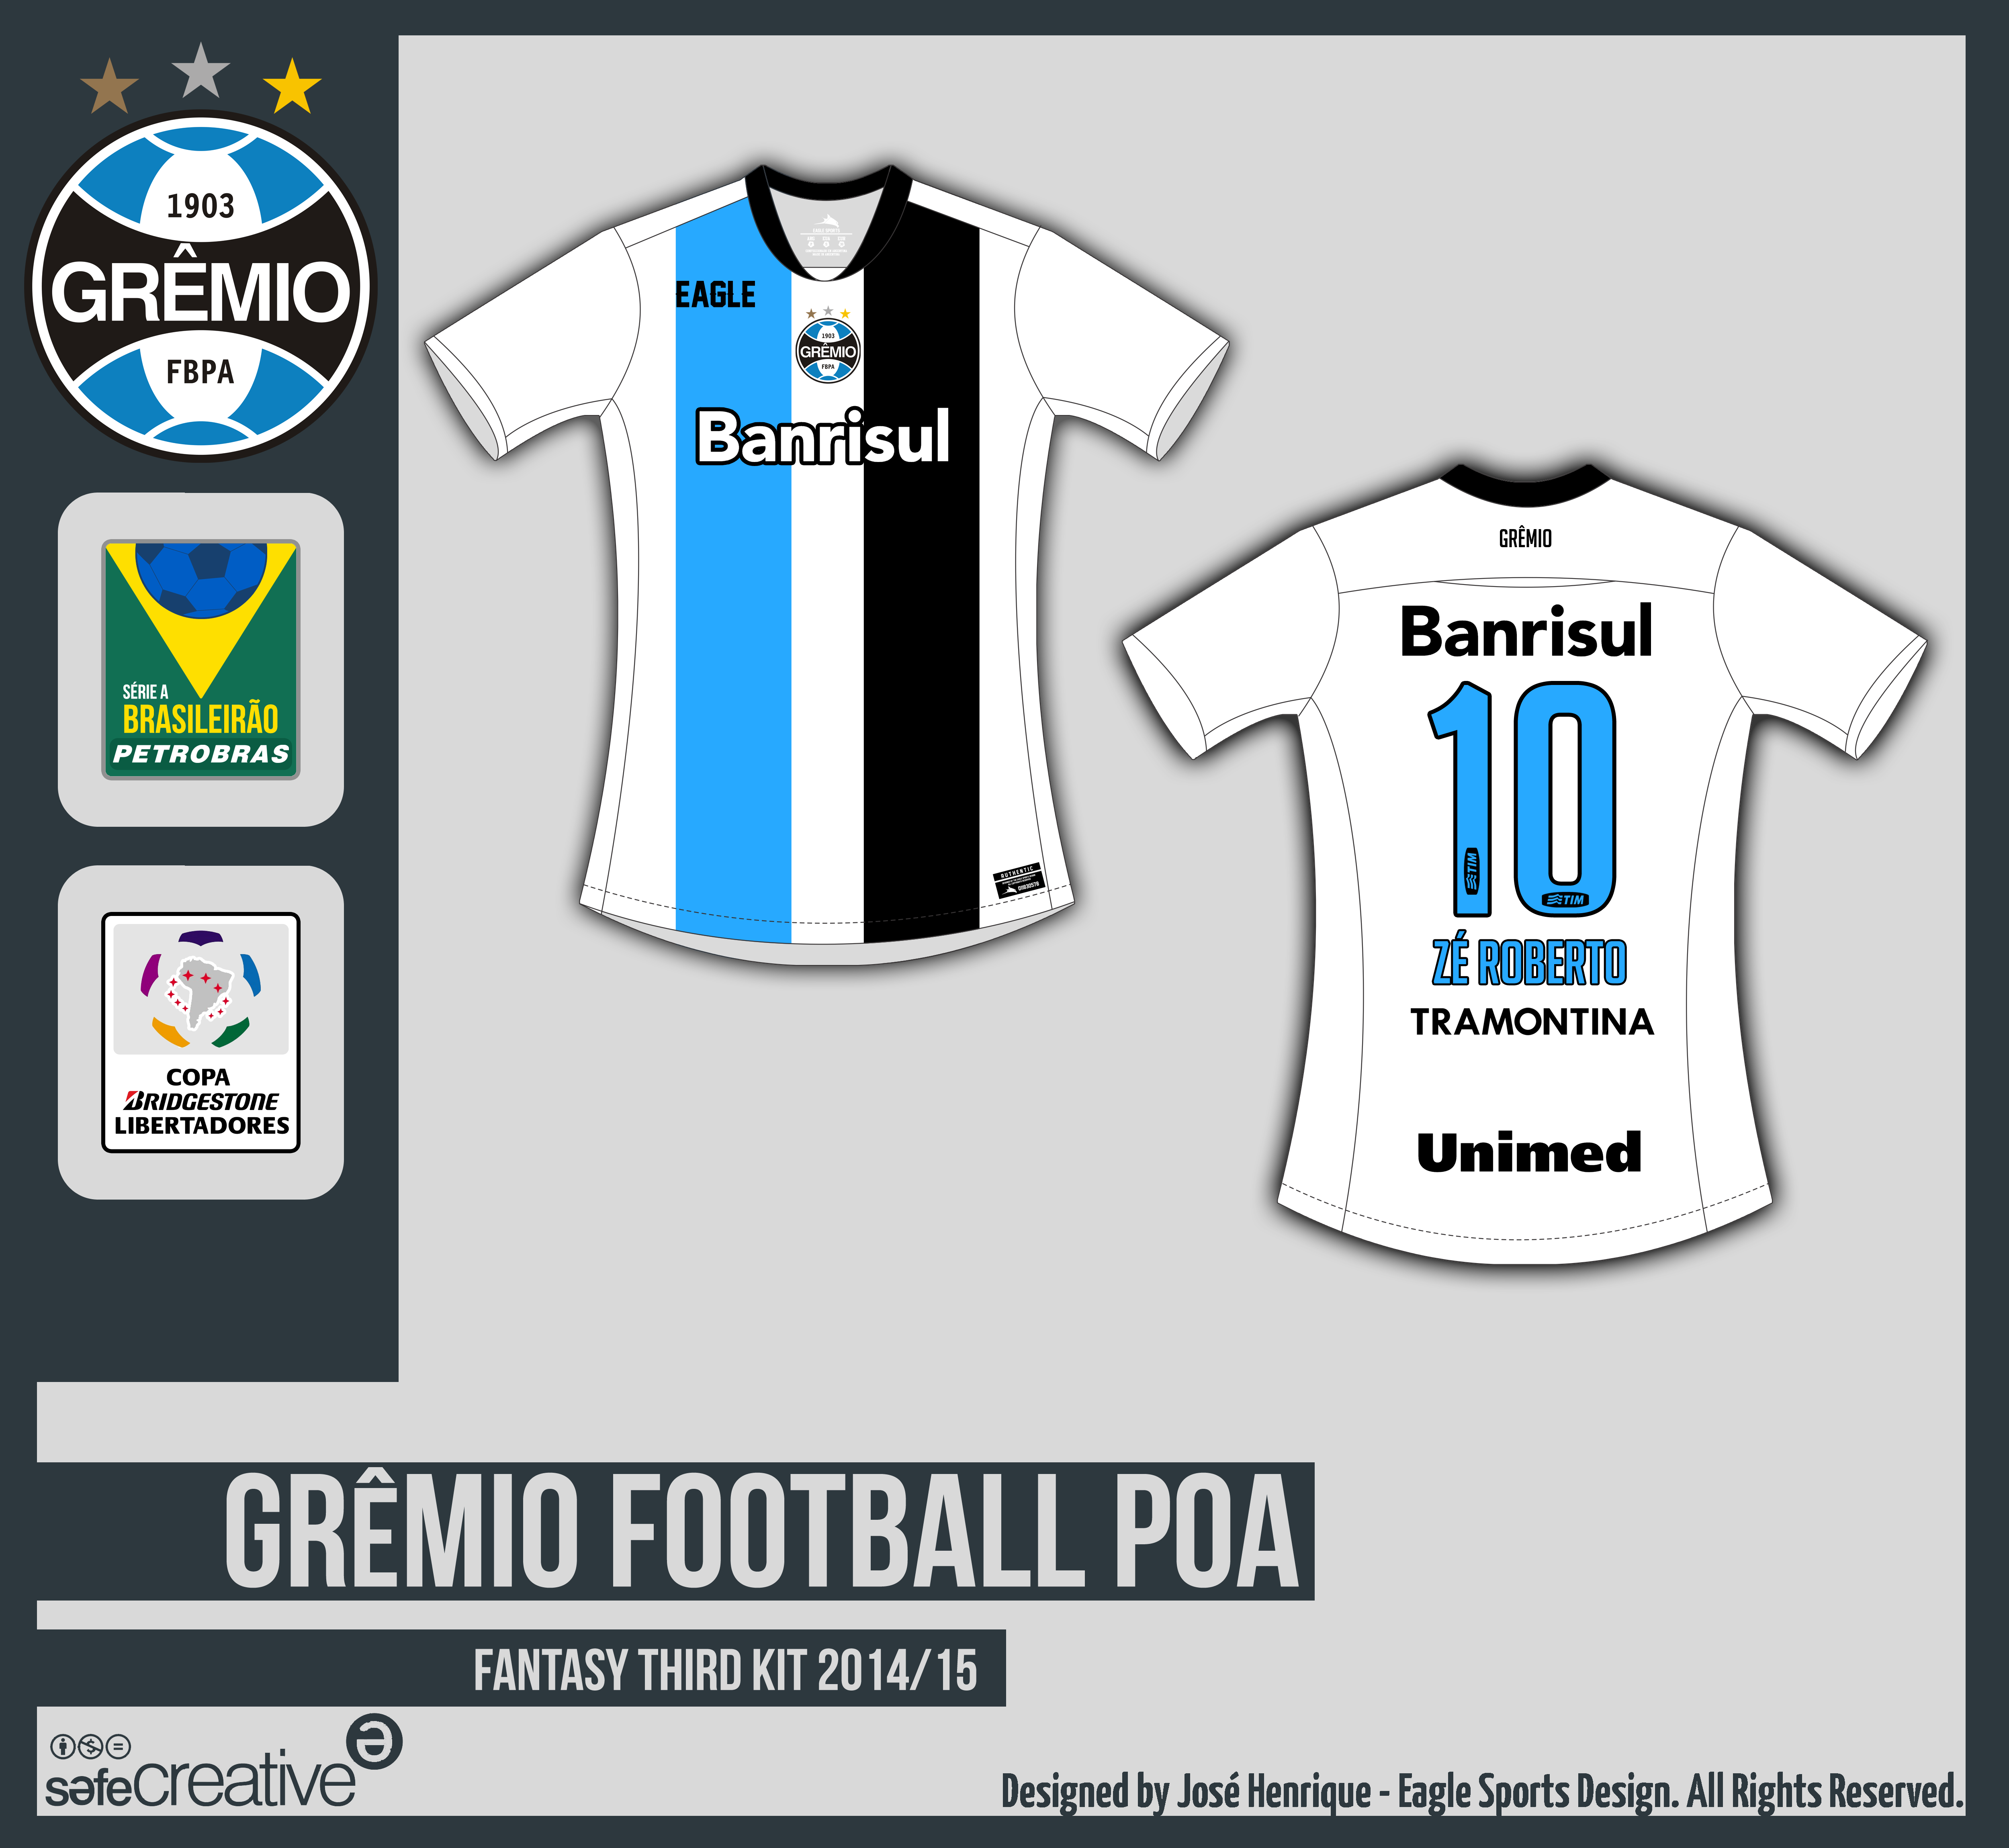 http://fc00.deviantart.net/fs70/f/2013/152/7/e/gremio_third_eagle_by_eaglesports-d67fd6d.png